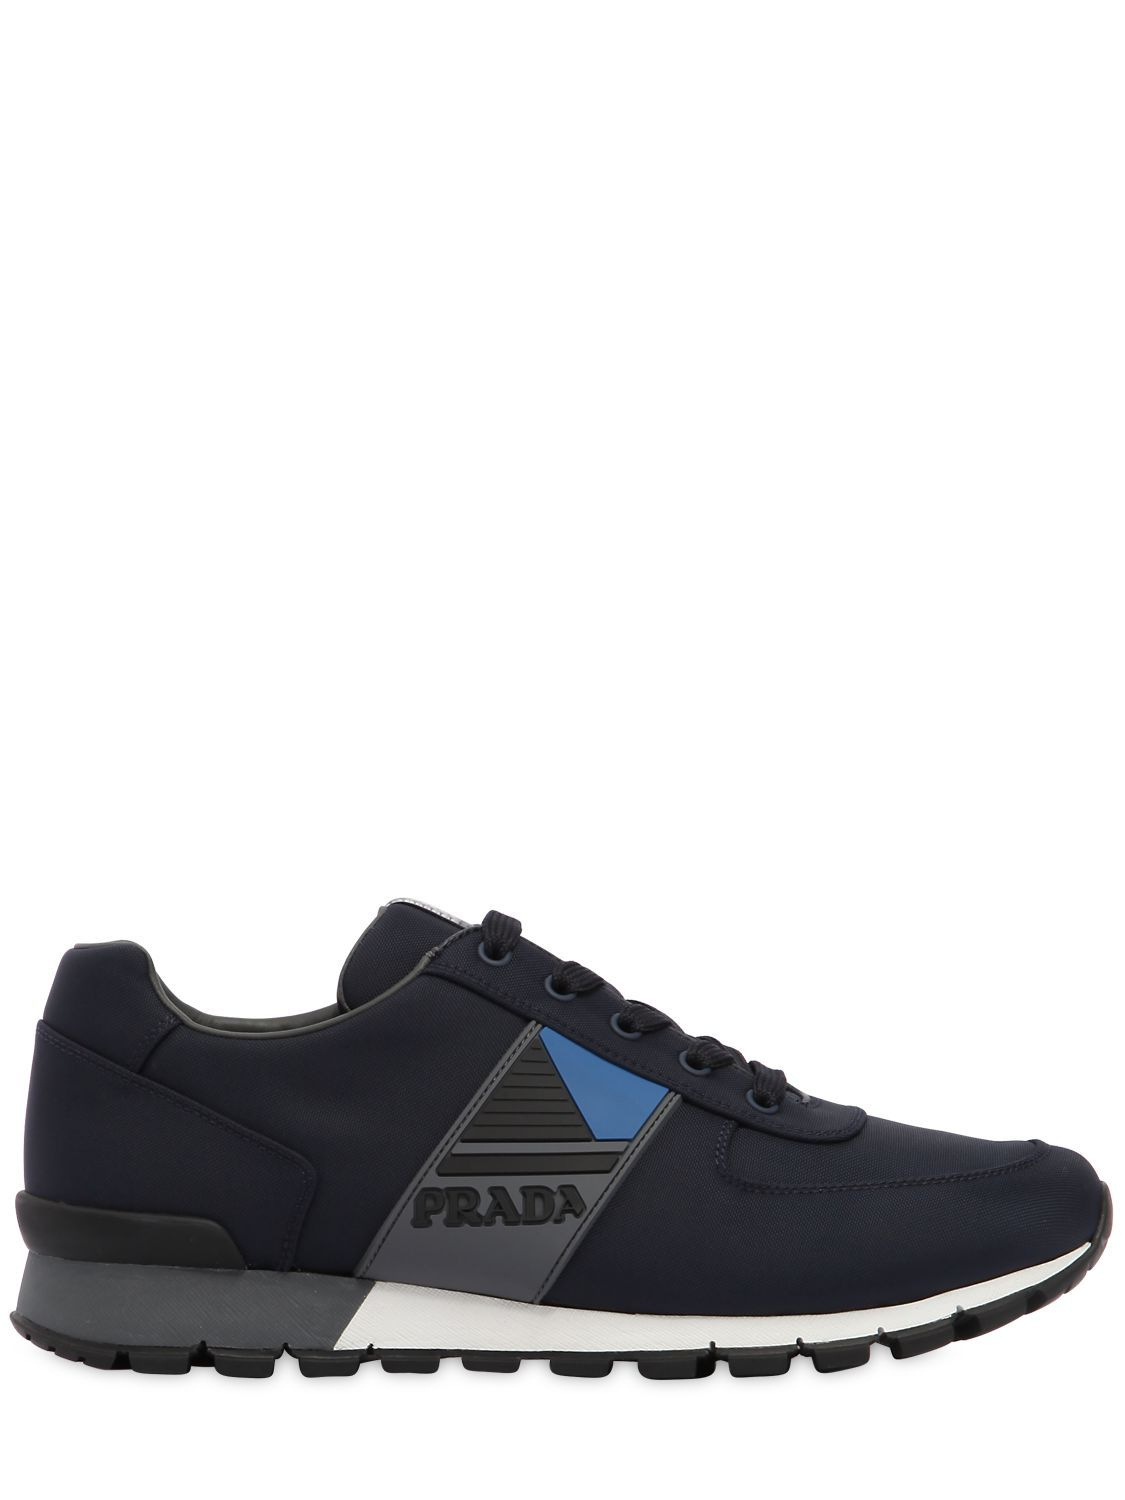 wholesale dealer 76cbb 18bb3 PRADA MATCH RACE CORDURA RUNNING SNEAKERS. prada shoes